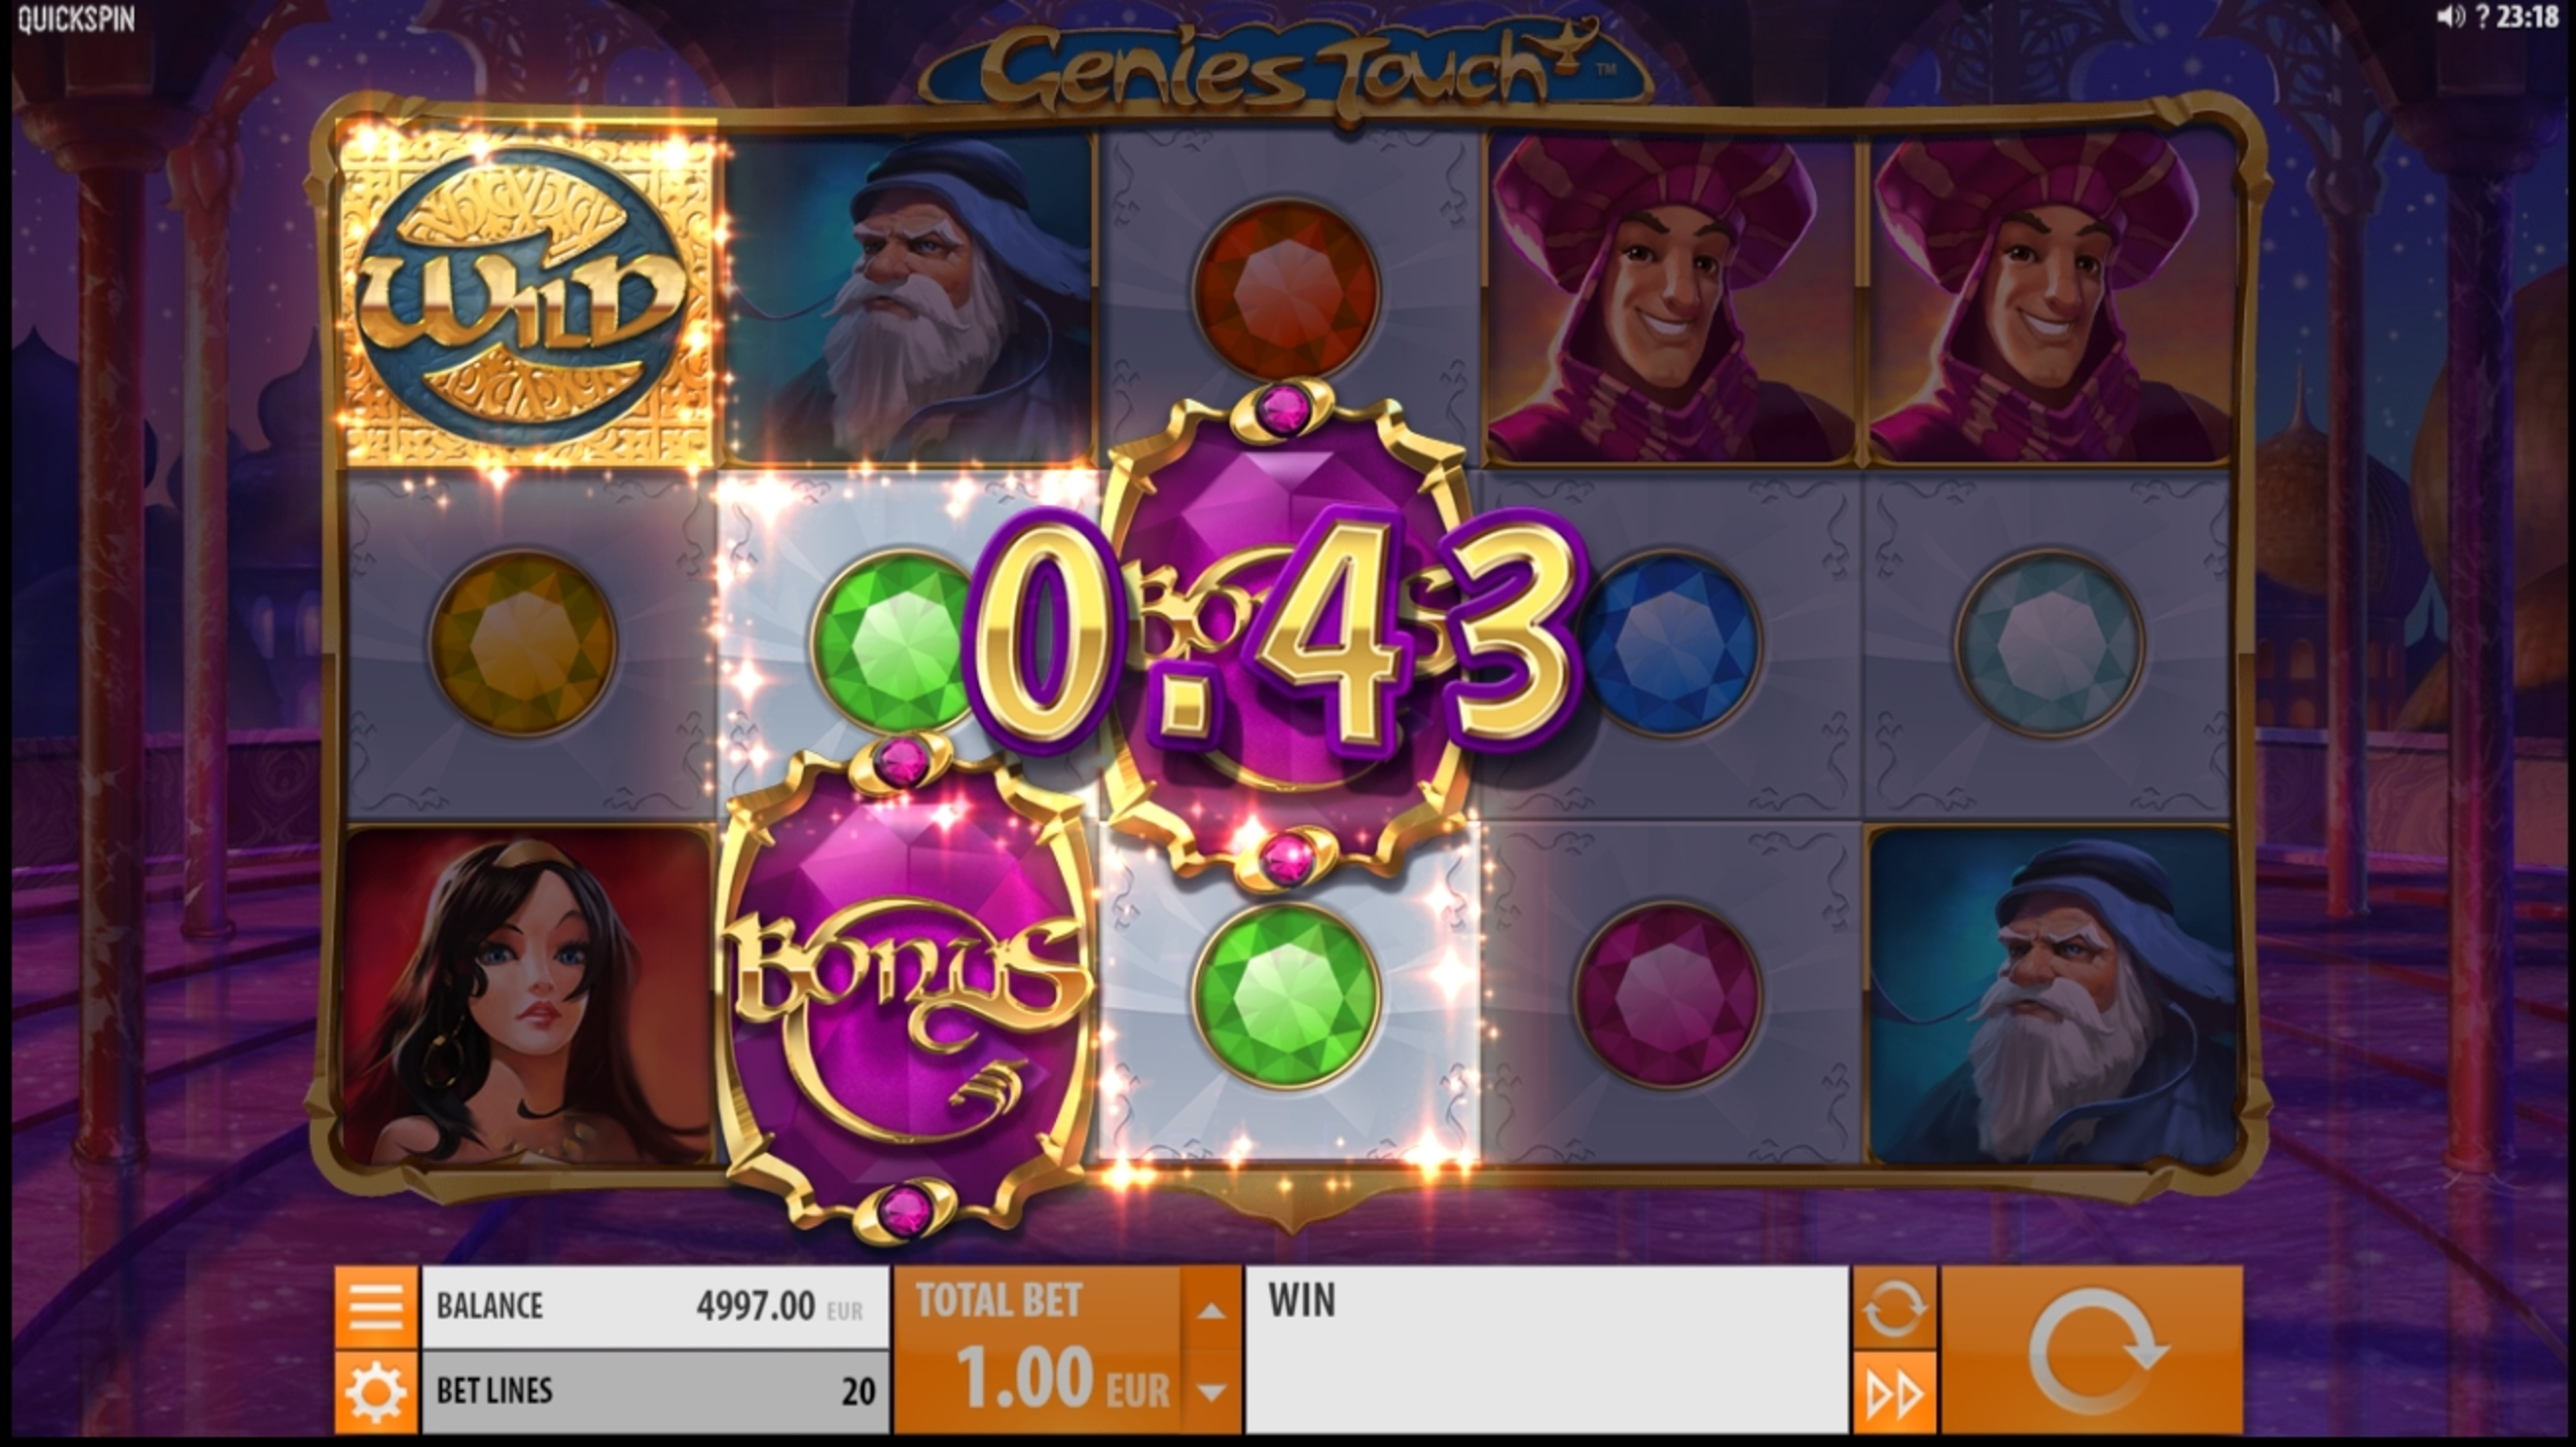 Win Money in Genies Touch Free Slot Game by Quickspin